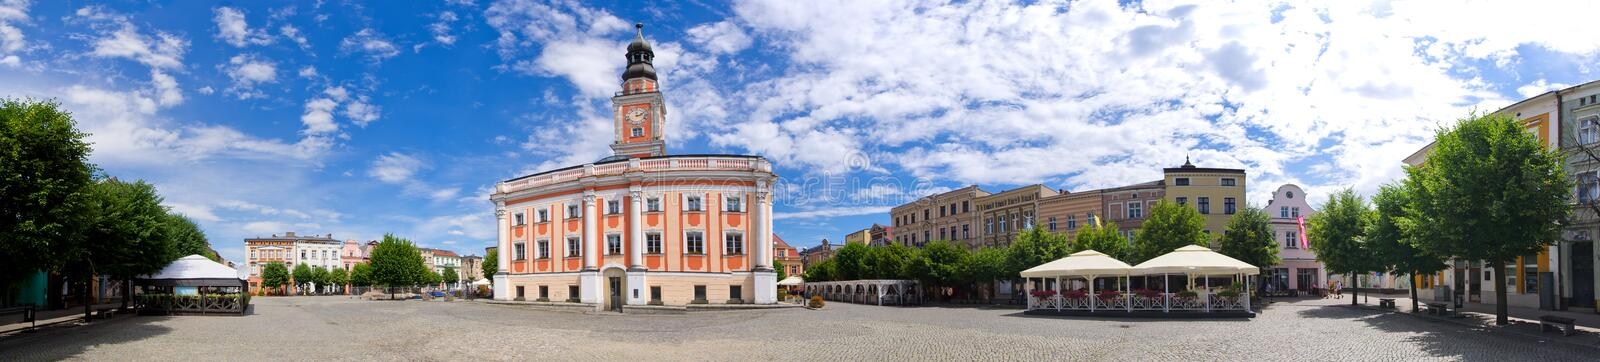 Town hall and square in Leszno, Poland. Town hall and square in Leszno - Poland royalty free stock image